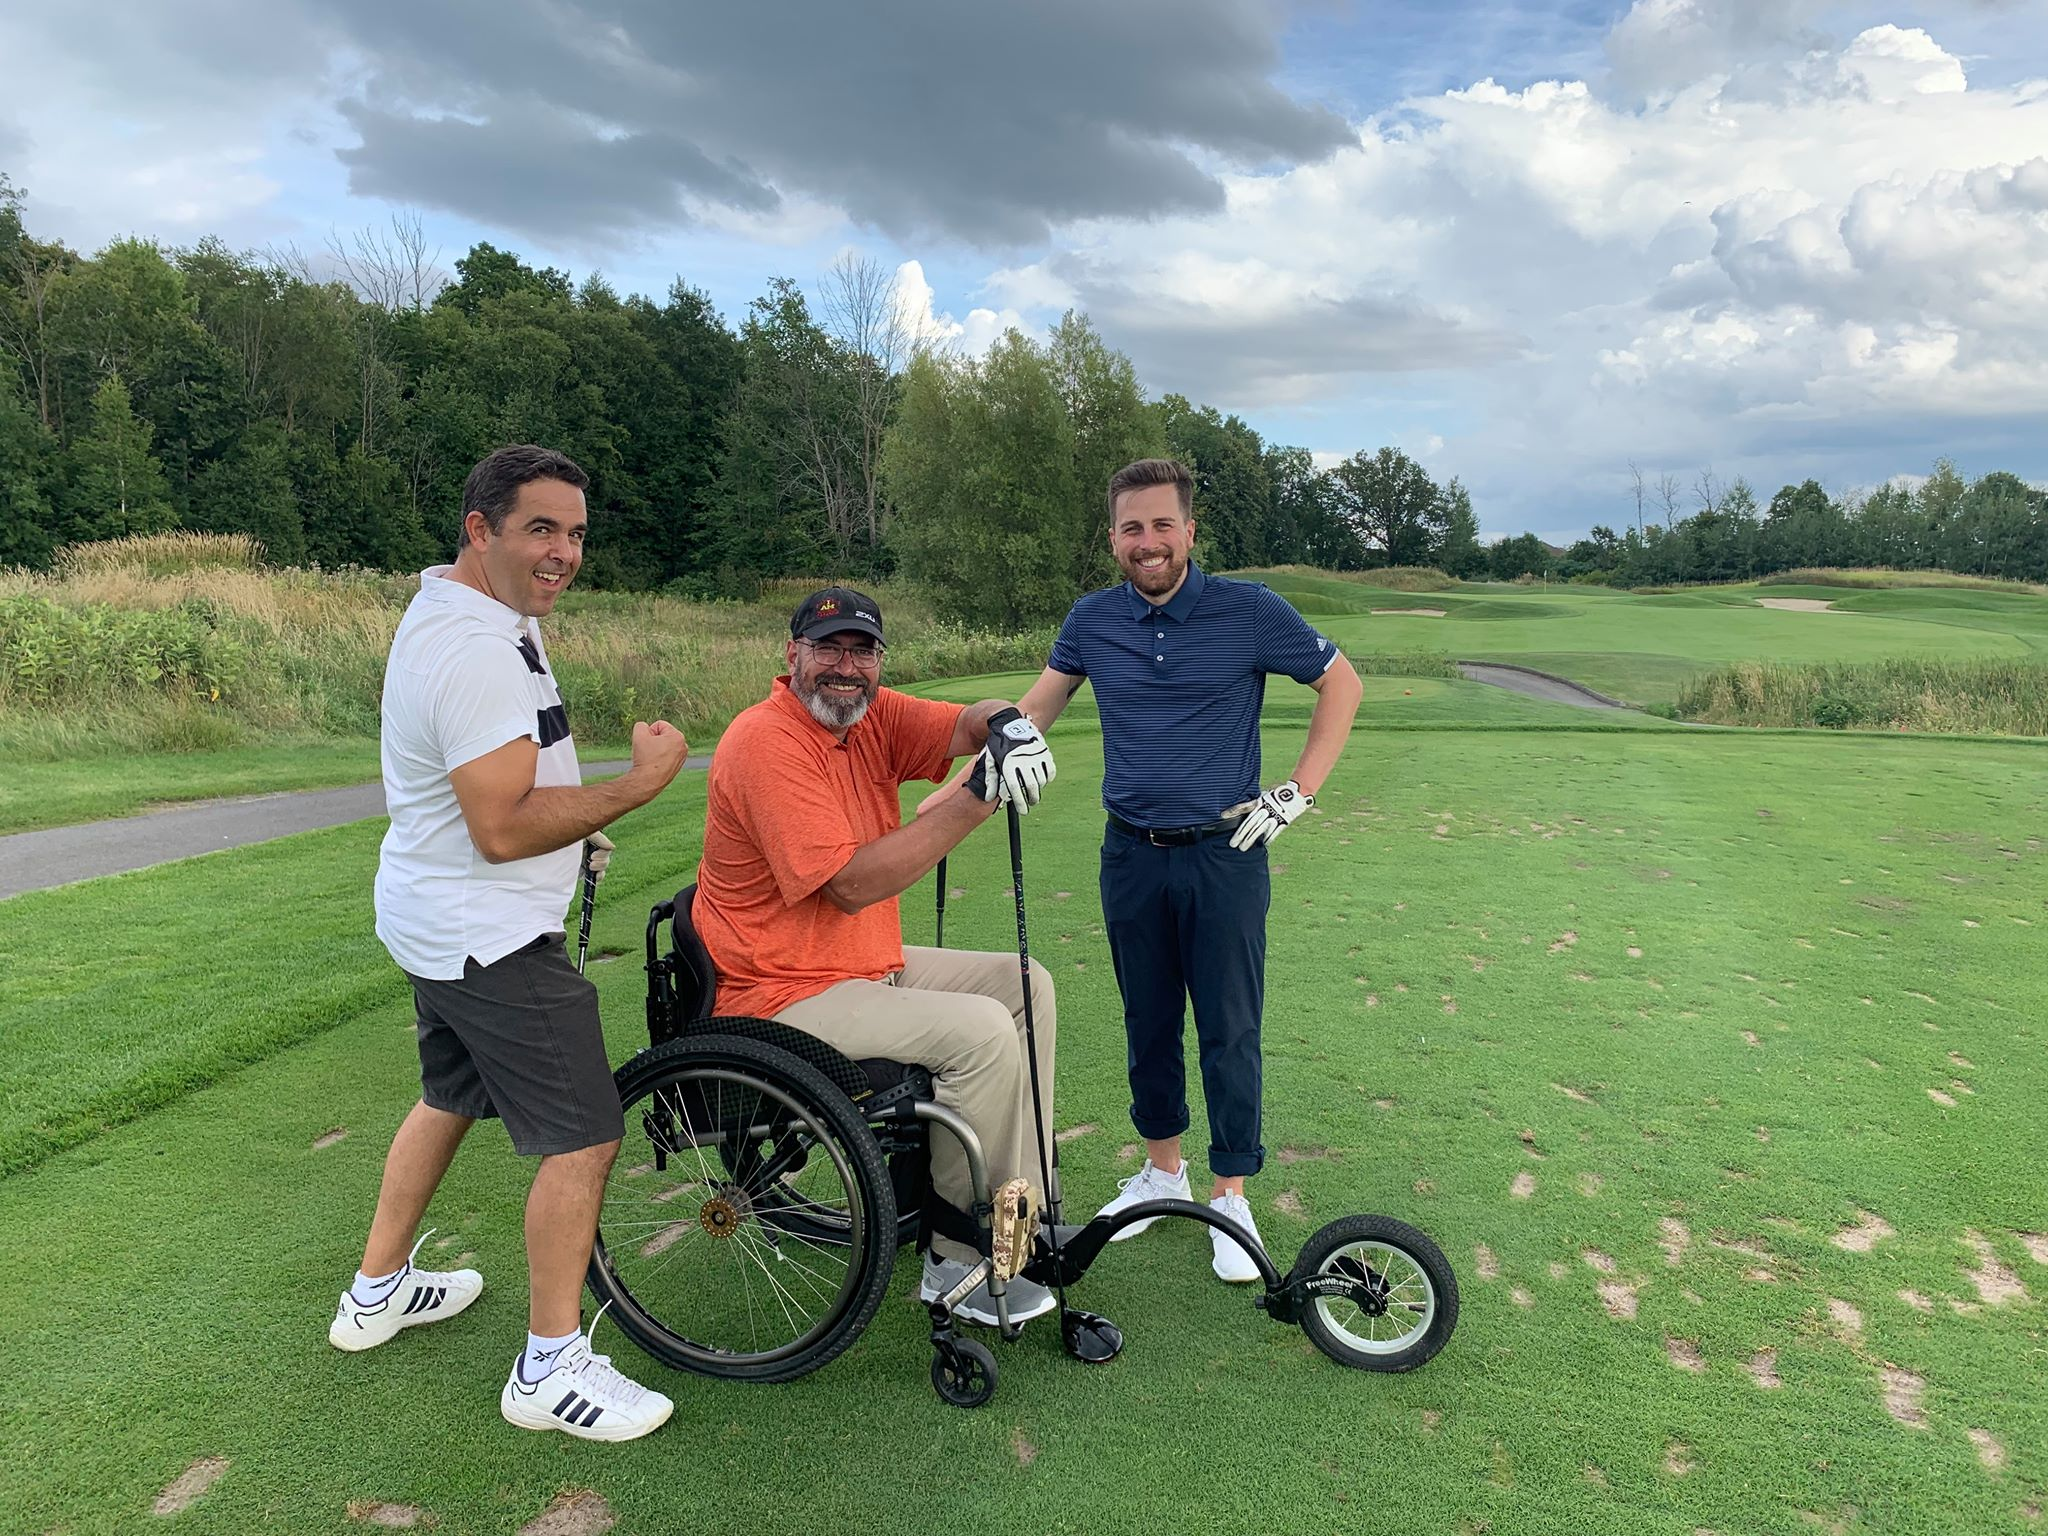 Golf with a hero 2019 - Wednesday, August 21st, 2019   Golf With A Hero event to raise funds for Wounded Warriors Canada on August 21, 2019 at The Beautiful Stonebridge Golf Club. People spent the day golfing with a Hero from our community. Each foursome was comprised of 3 paid golf spots, and one hero (veteran or first responder.) We would like to thank everyone who attended and a special thank you to our supporting sponsors.